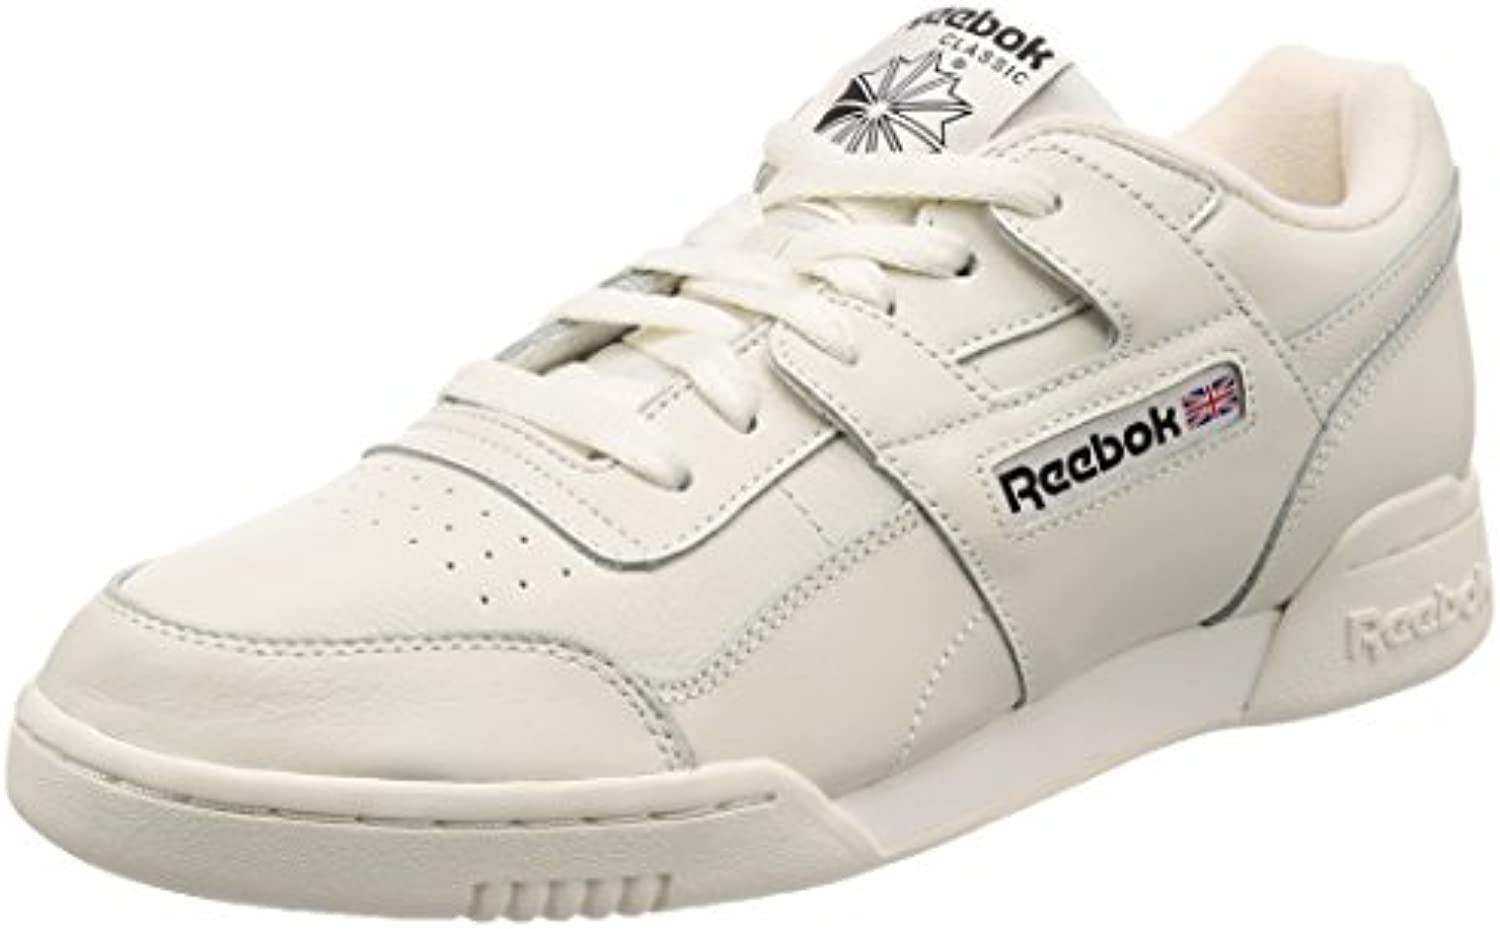 Reebok Workout Plus Mu, Scarpe da Fitness Uomo | Fornitura Fornitura Fornitura sufficiente